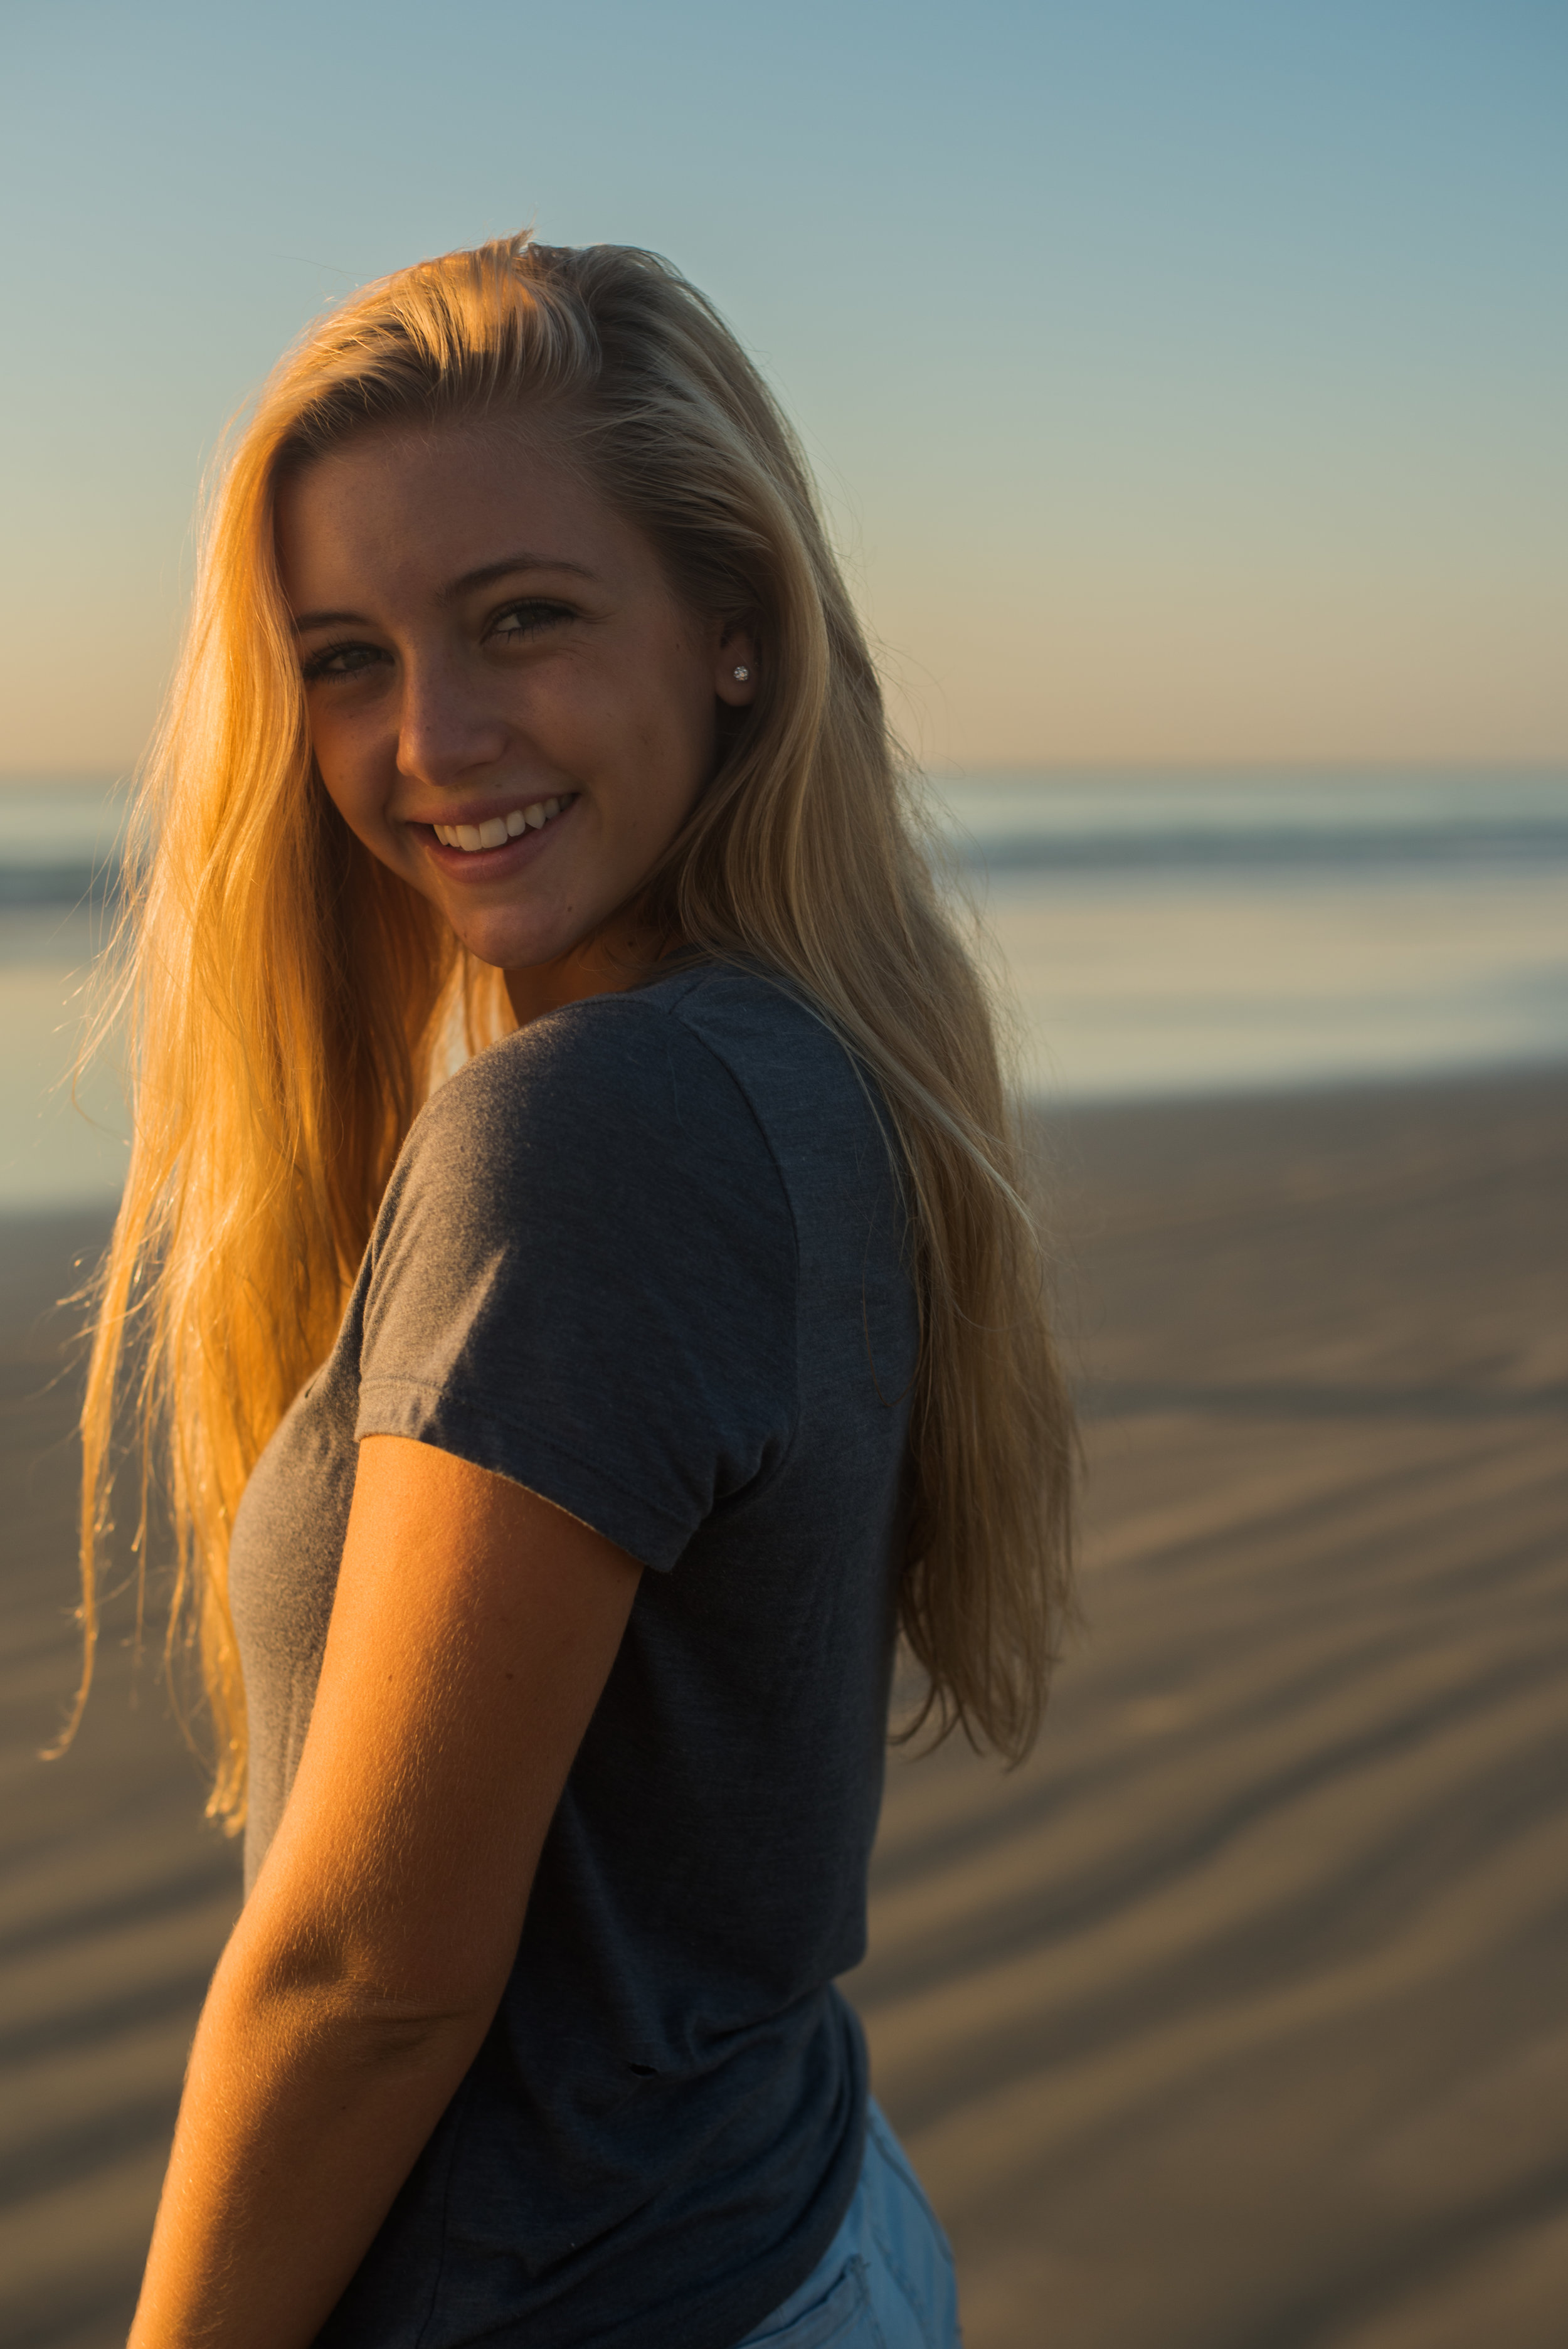 maddie-cocoa-beach-senior-photo-1-23.jpg